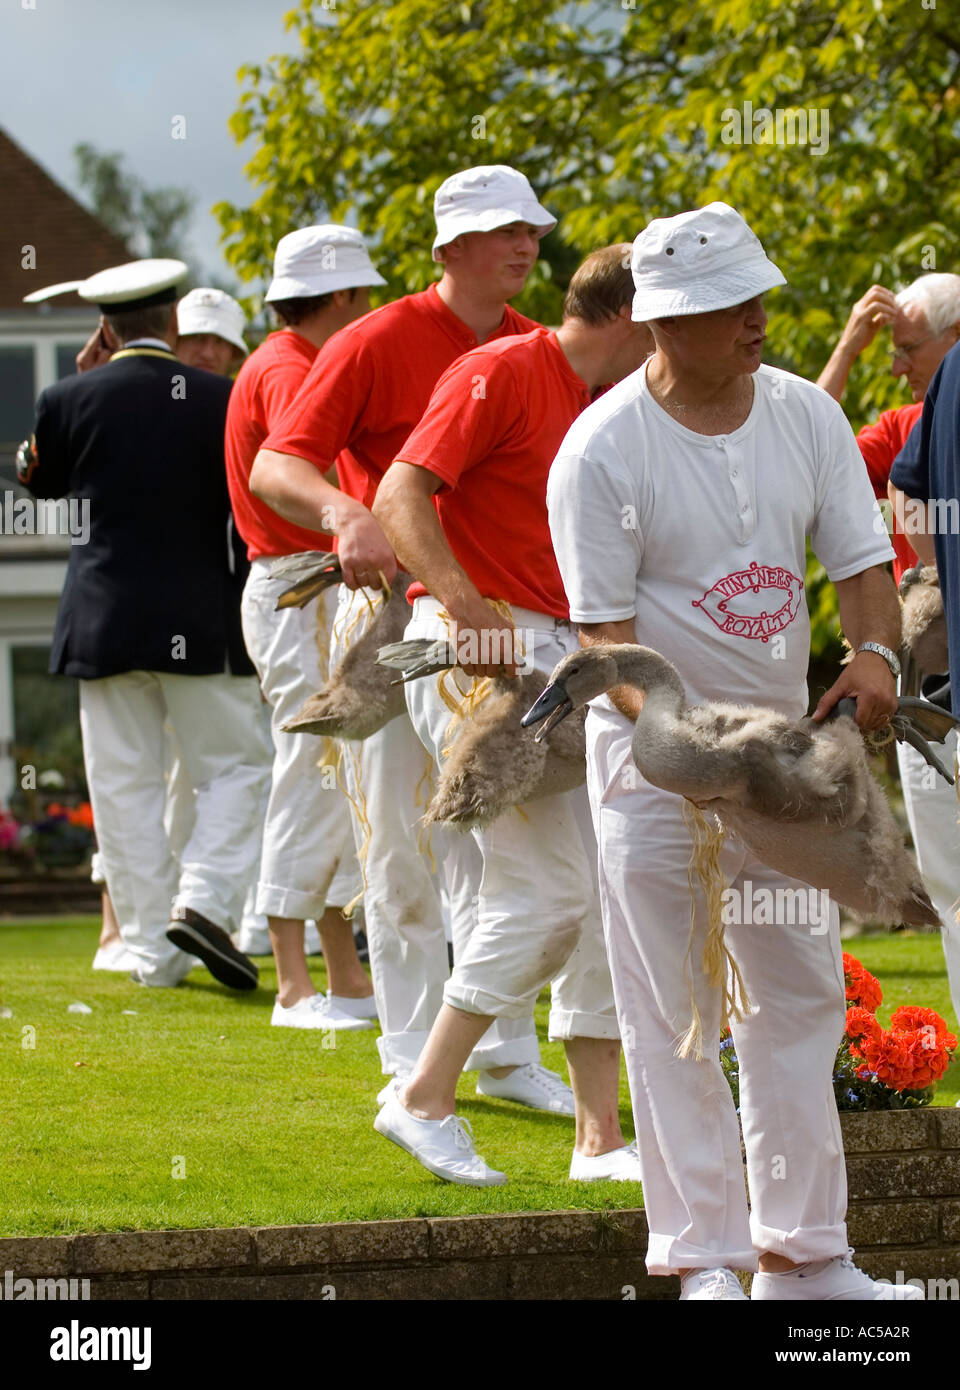 Swan uppers examining cygnets at the annual swan upping River Thames - Stock Image